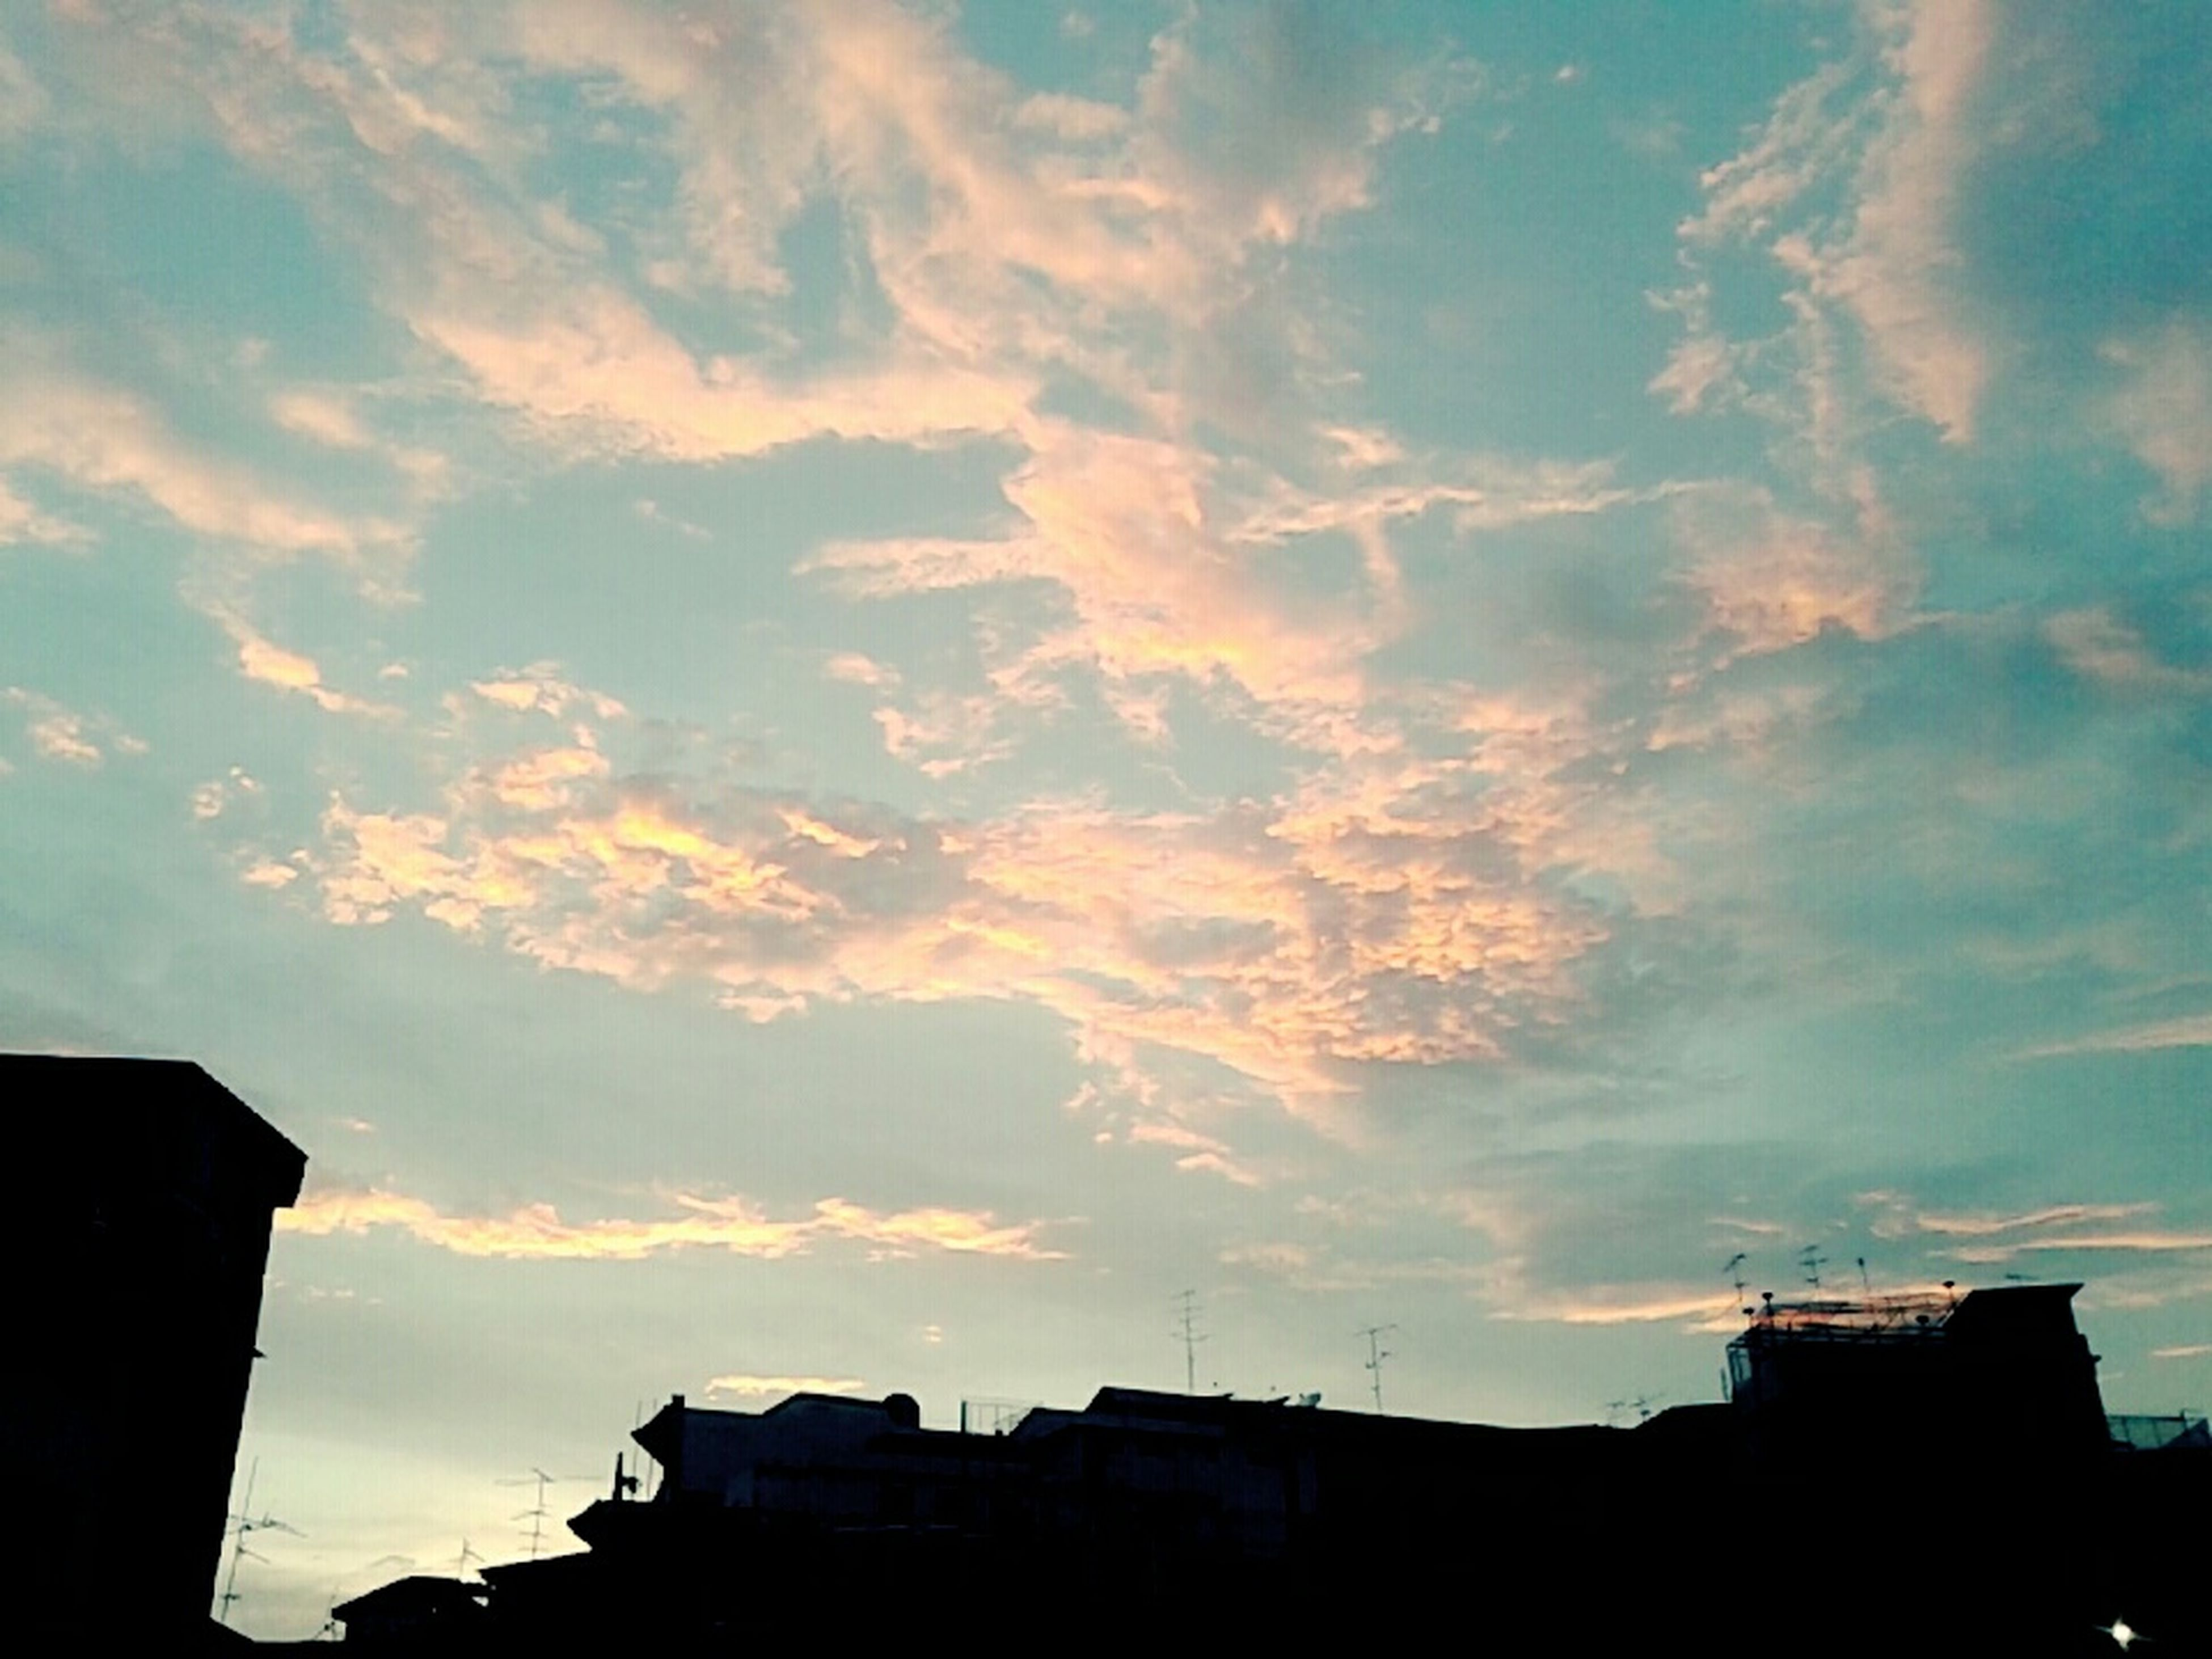 building exterior, architecture, built structure, sky, silhouette, low angle view, sunset, cloud - sky, house, residential structure, building, cloud, cloudy, residential building, high section, city, outdoors, nature, dusk, beauty in nature